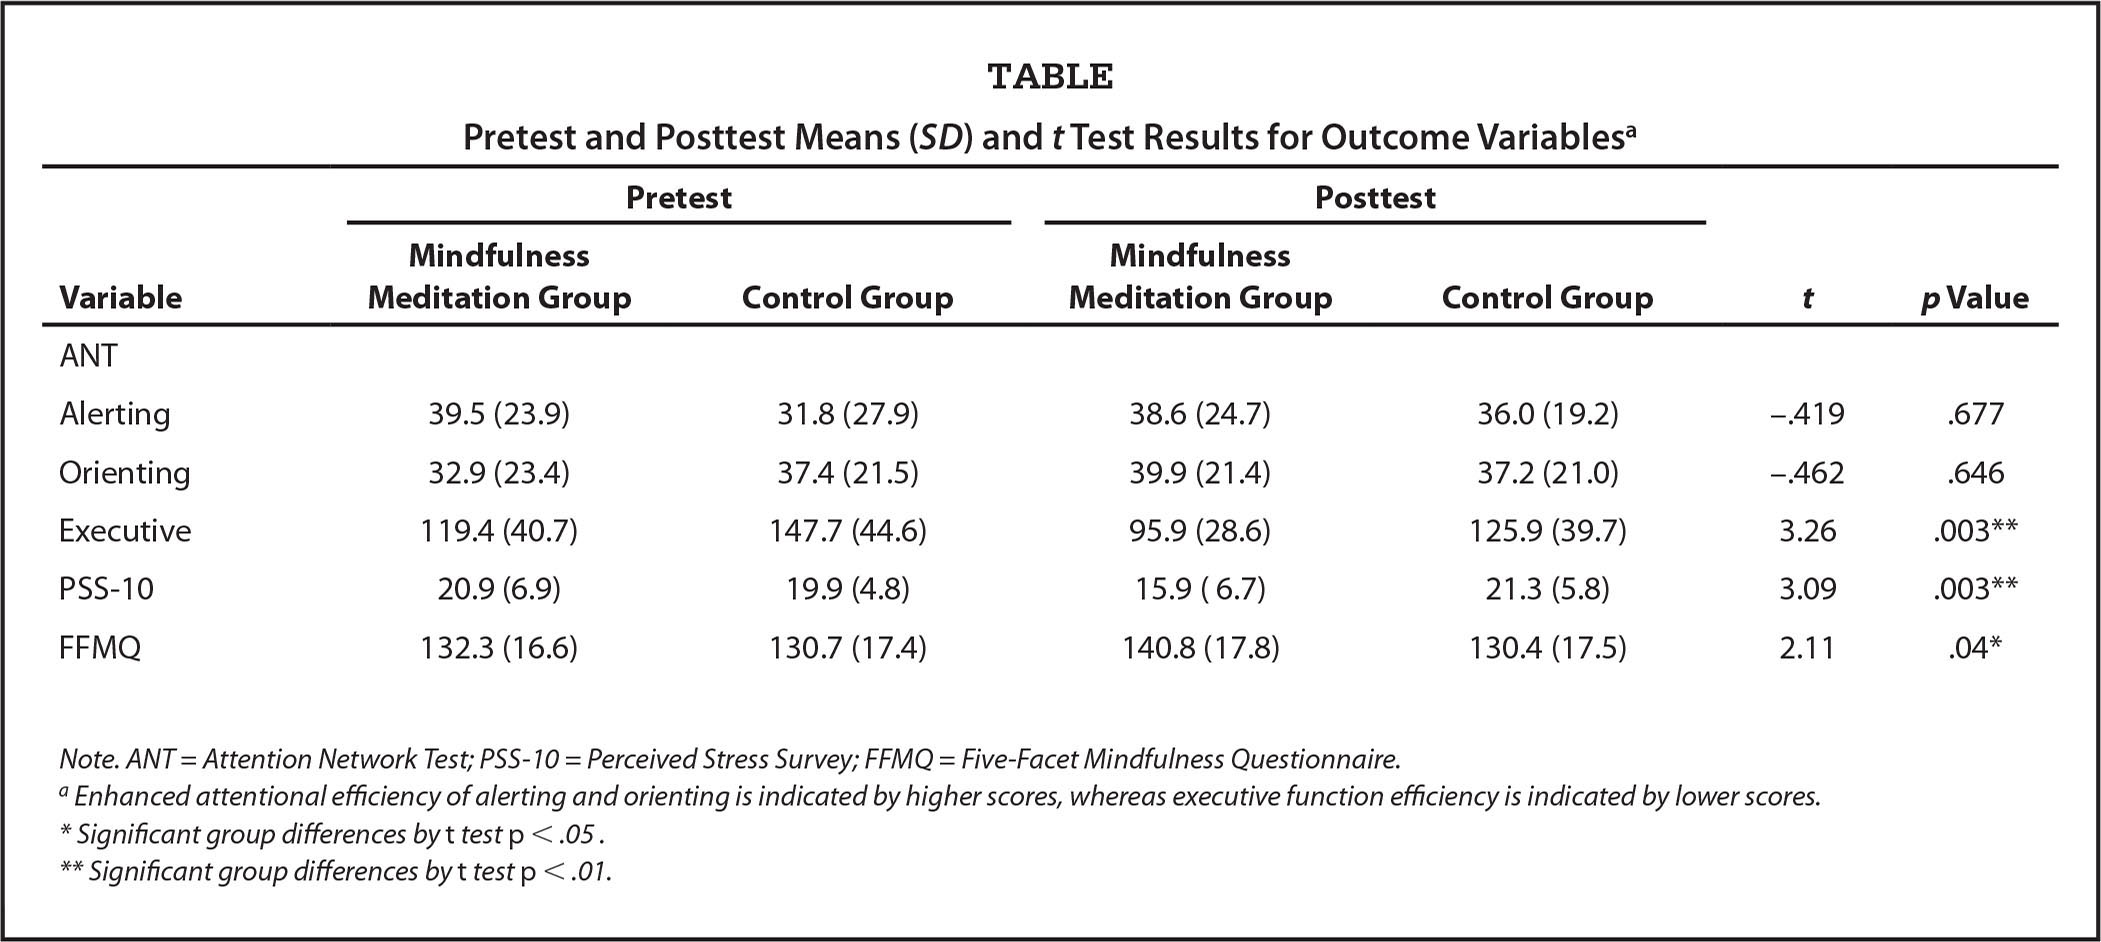 Pretest and Posttest Means (SD) and t Test Results for Outcome Variablesa